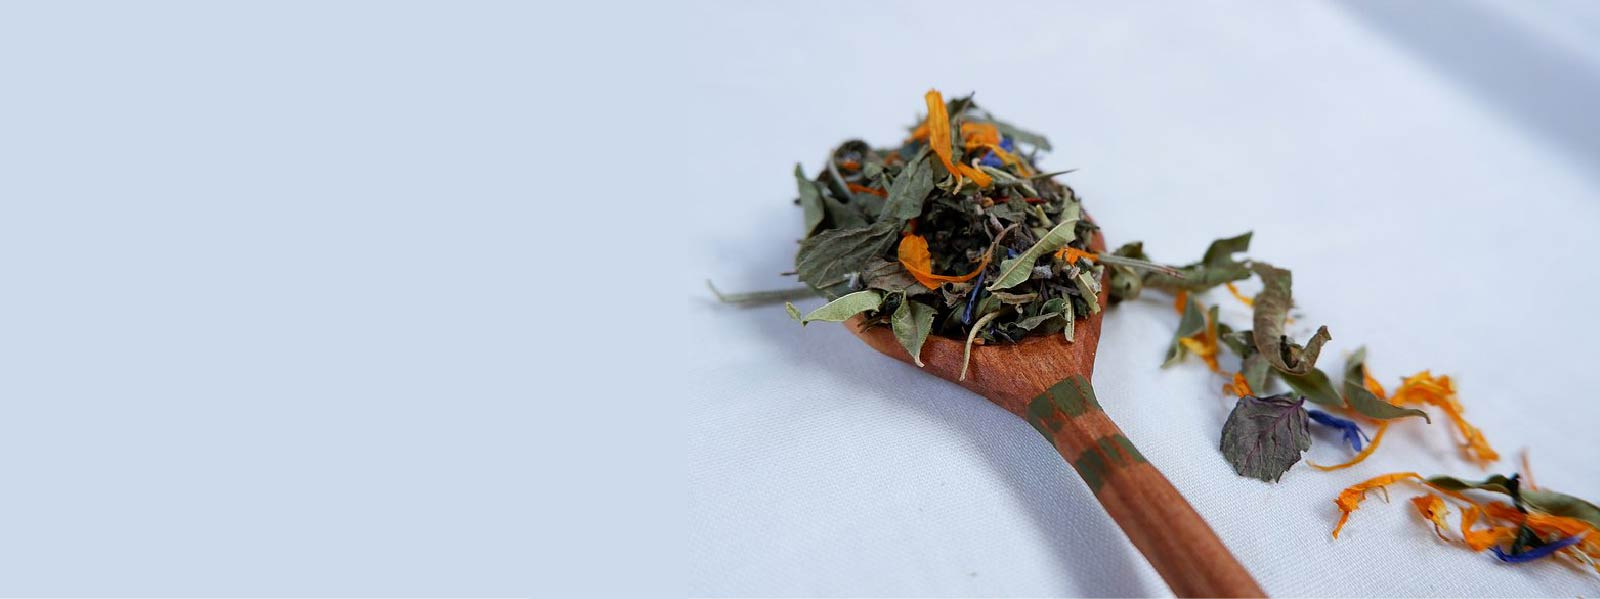 Loose tea made from flowers on a wooden spoon